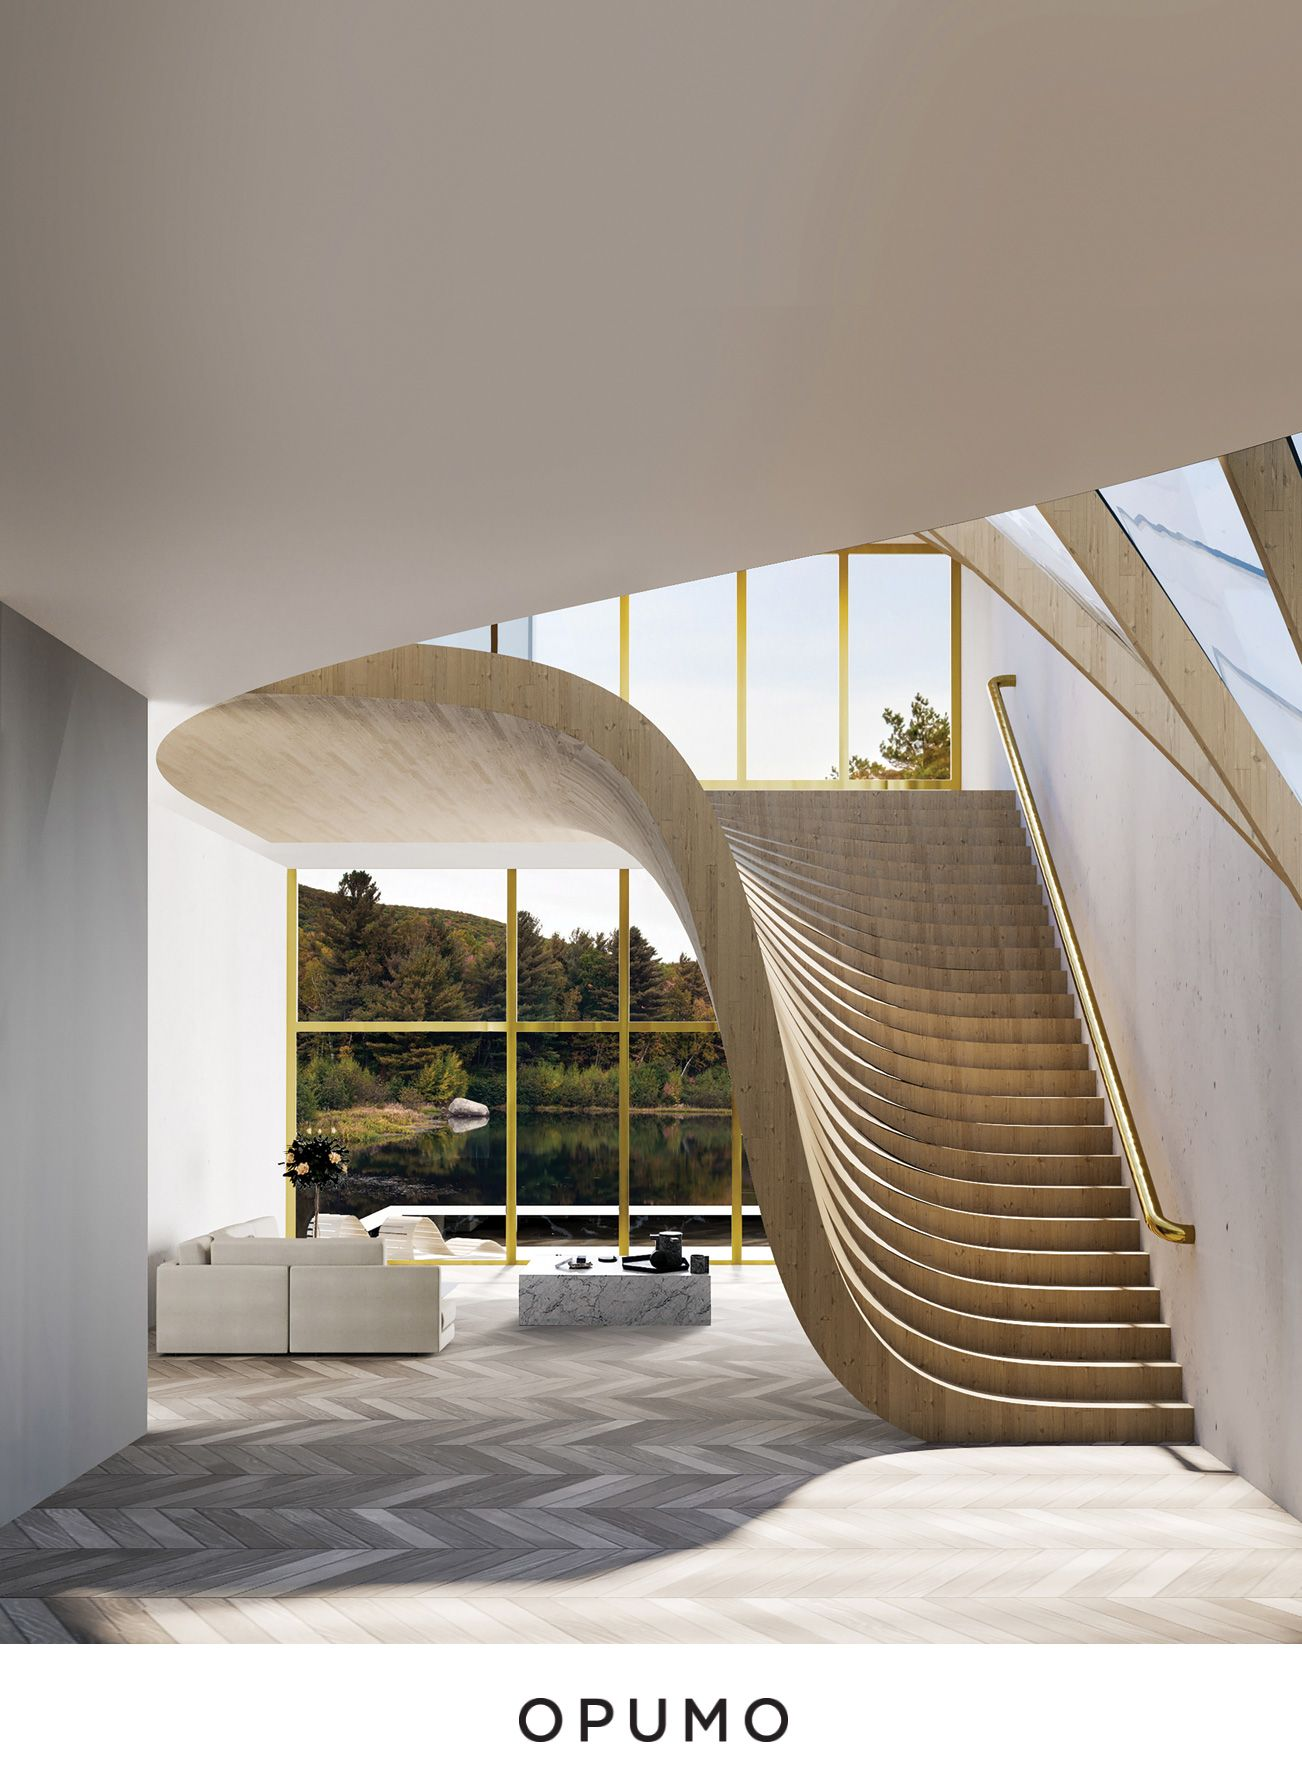 Project name: Lake House   Location: Lake Türlersee, Switzerland   Architect: Wafai Architecture Located on Lake Türlersee in Switzerland, Wafai Architecture's Lake House is designed as a holiday home for a small family consisting of a couple expecting a baby. Unfortunately the project could never be carried out as the client encountered difficulties acquiring the land.